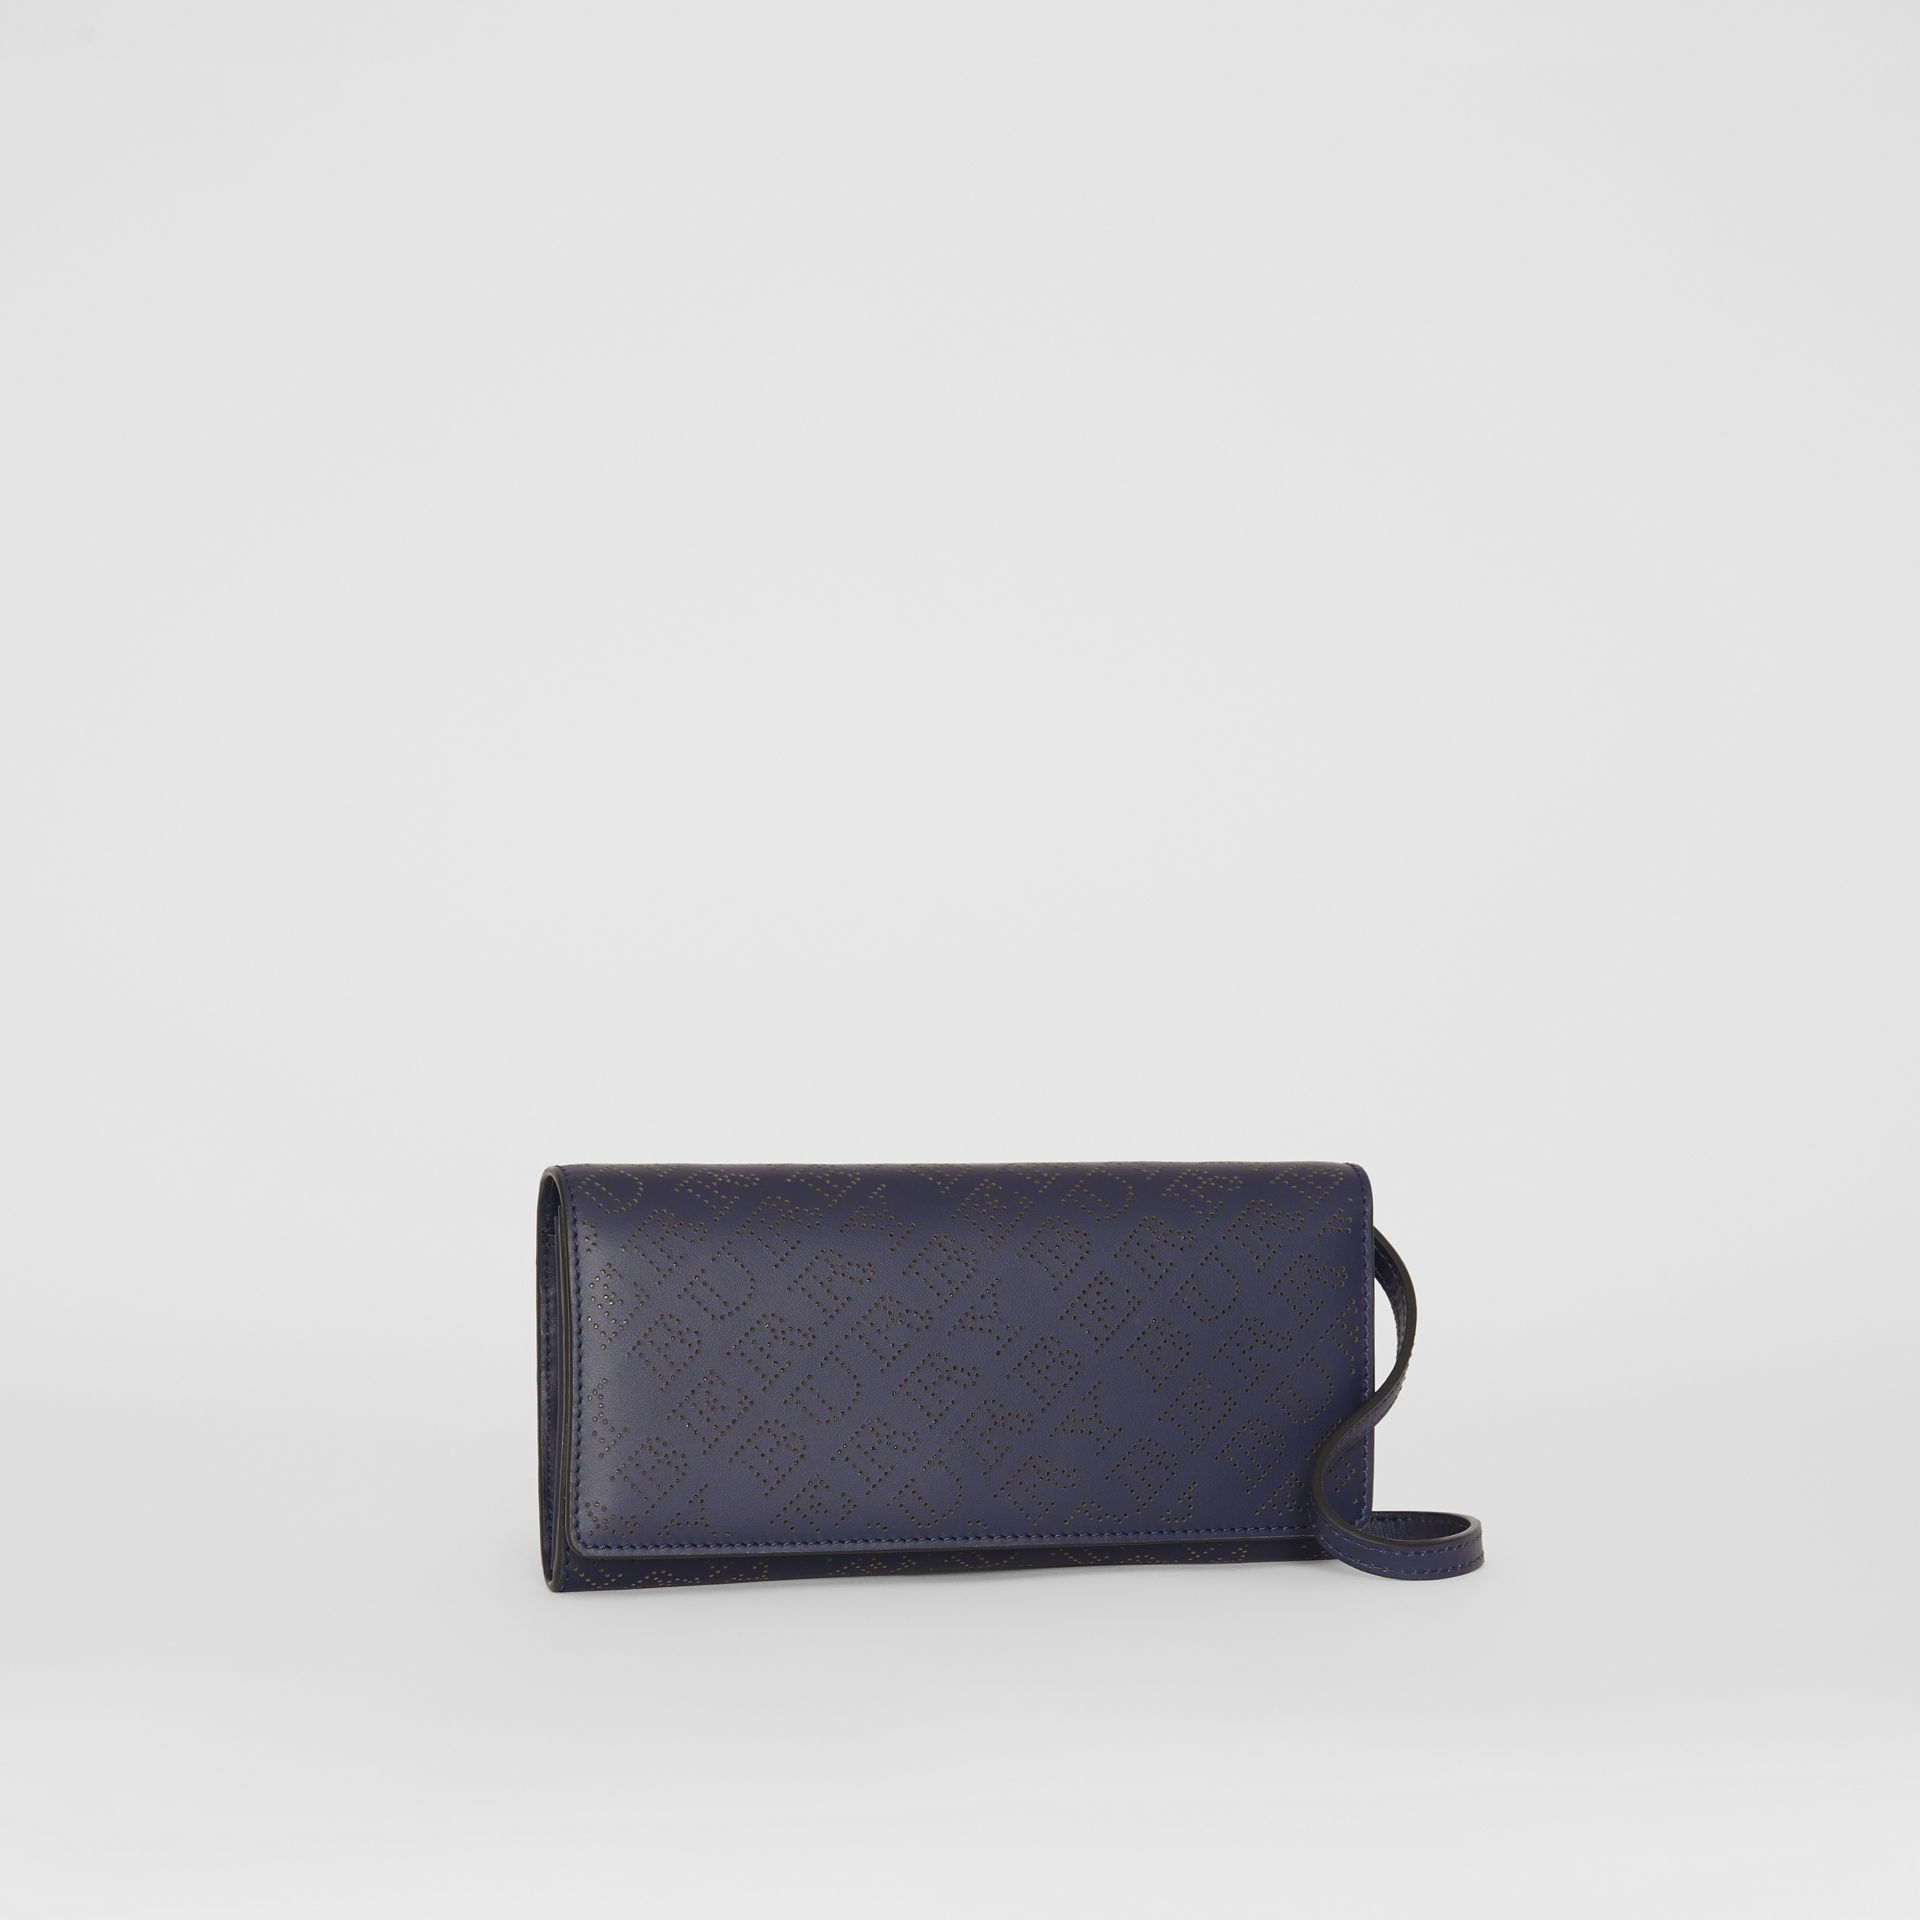 Perforated Logo Leather Wallet with Detachable Strap in Navy - Women | Burberry Australia - gallery image 6